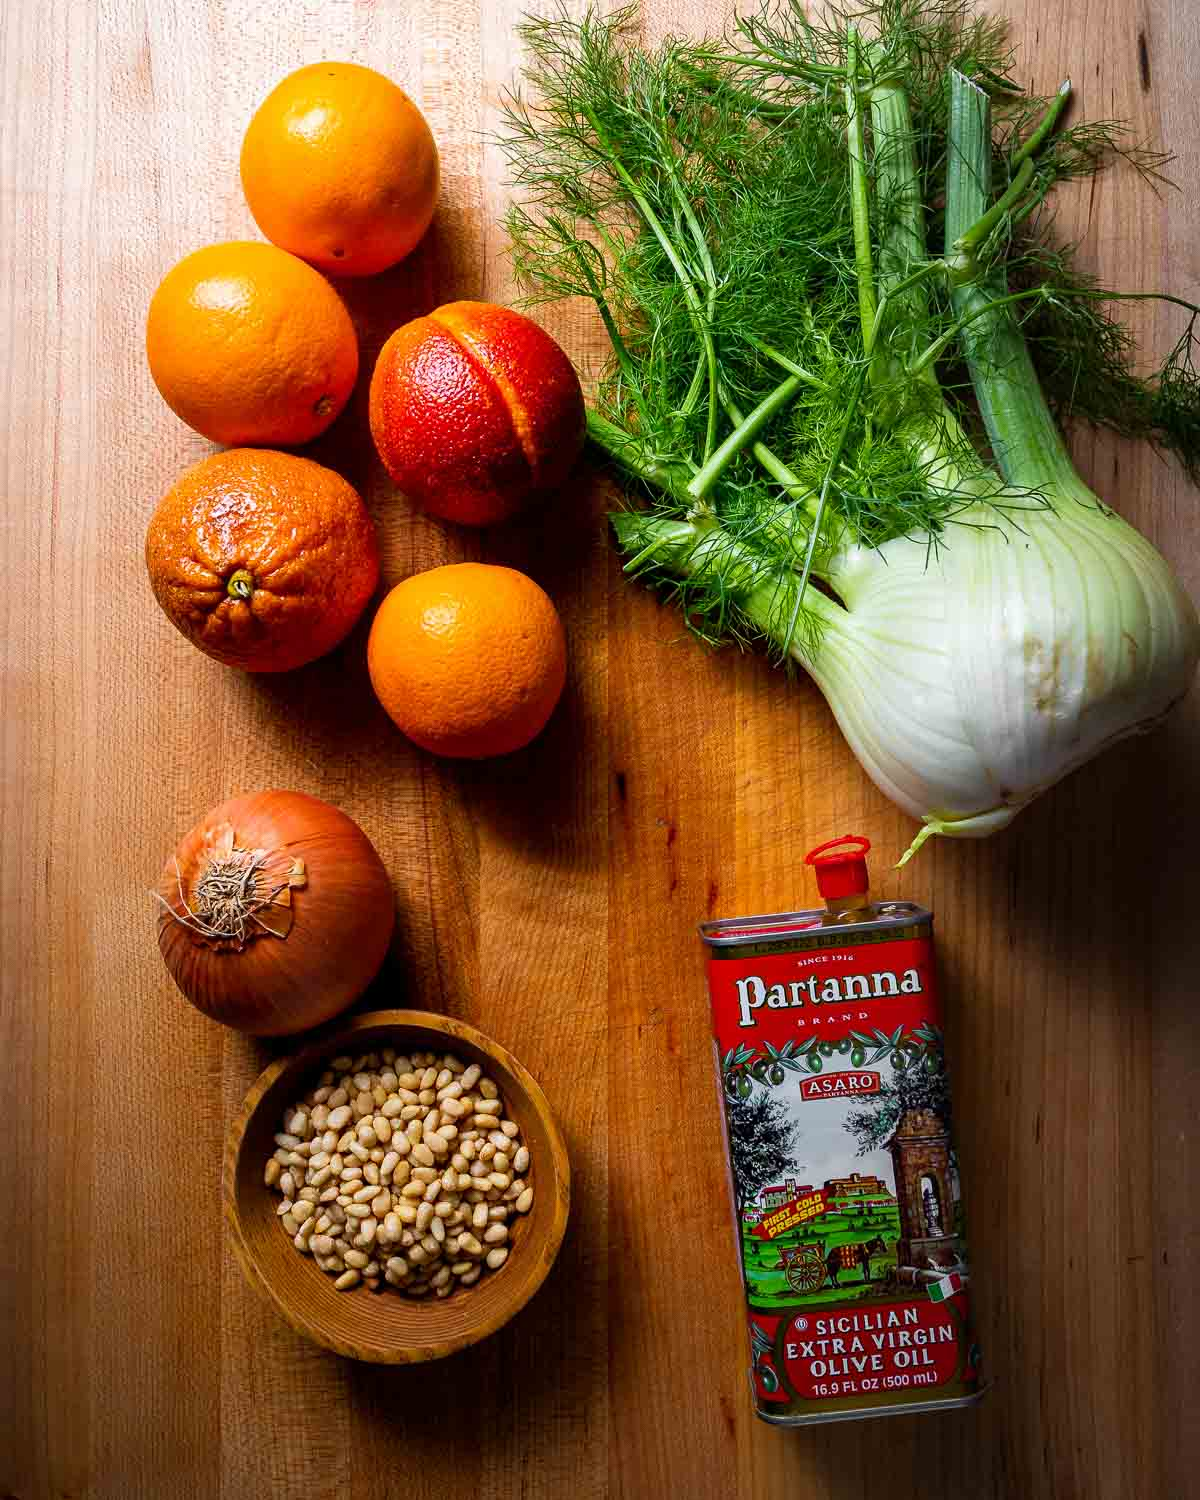 Ingredients shown: 5 oranges, 1 onion, 1 fennel, pine nuts and extra virgin olive oil on a wood cutting board.